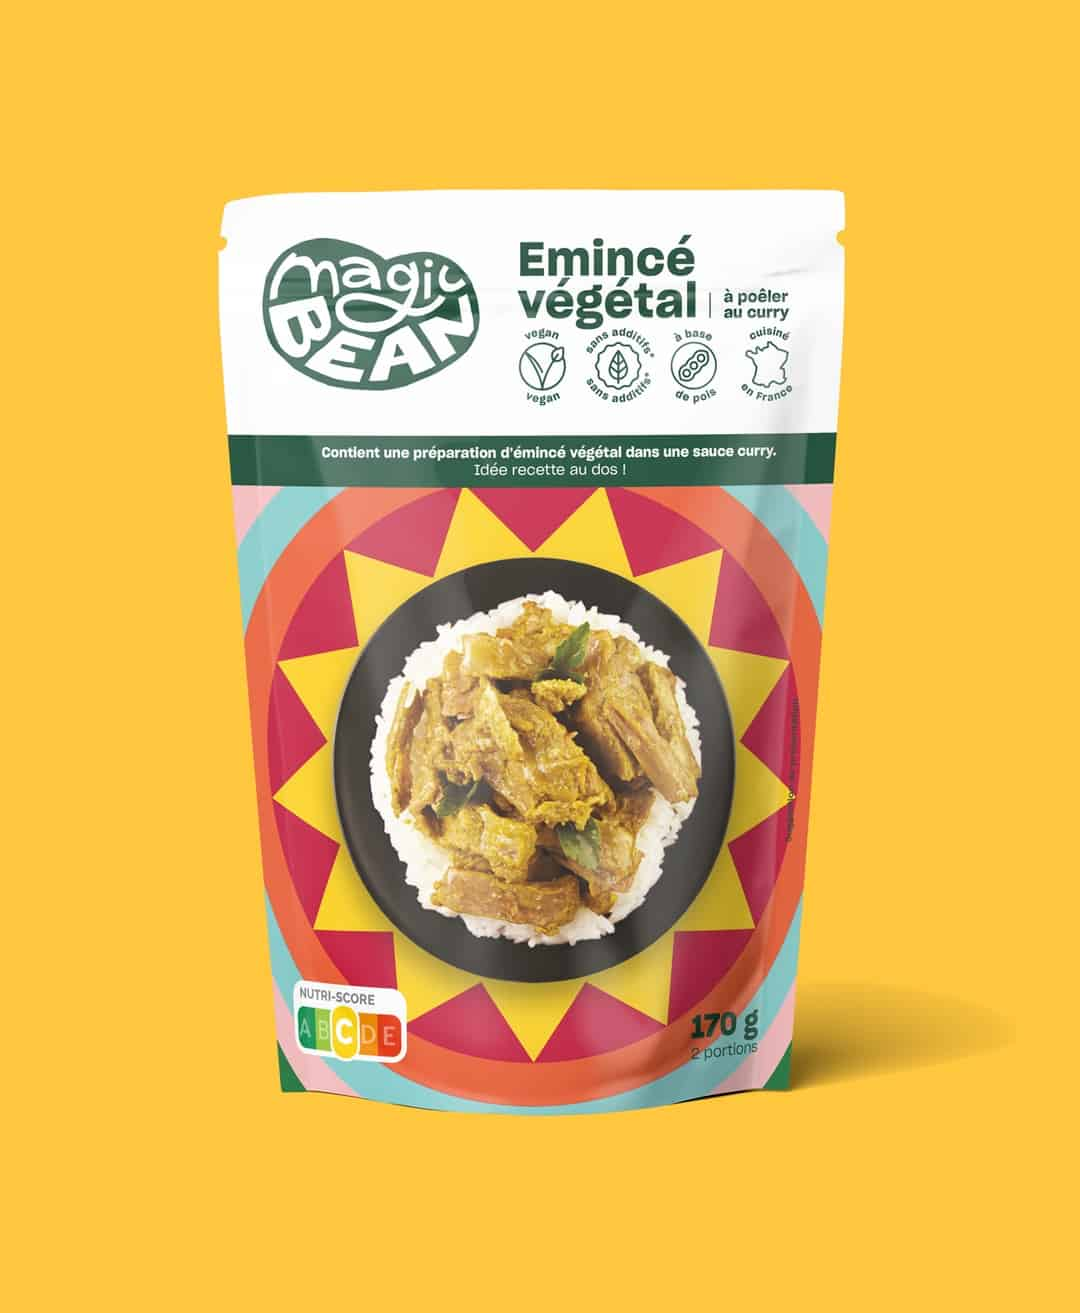 5e7cb66010498dce943be8b0 CURRY p 1080 - 100% végétal avec Magic Bean